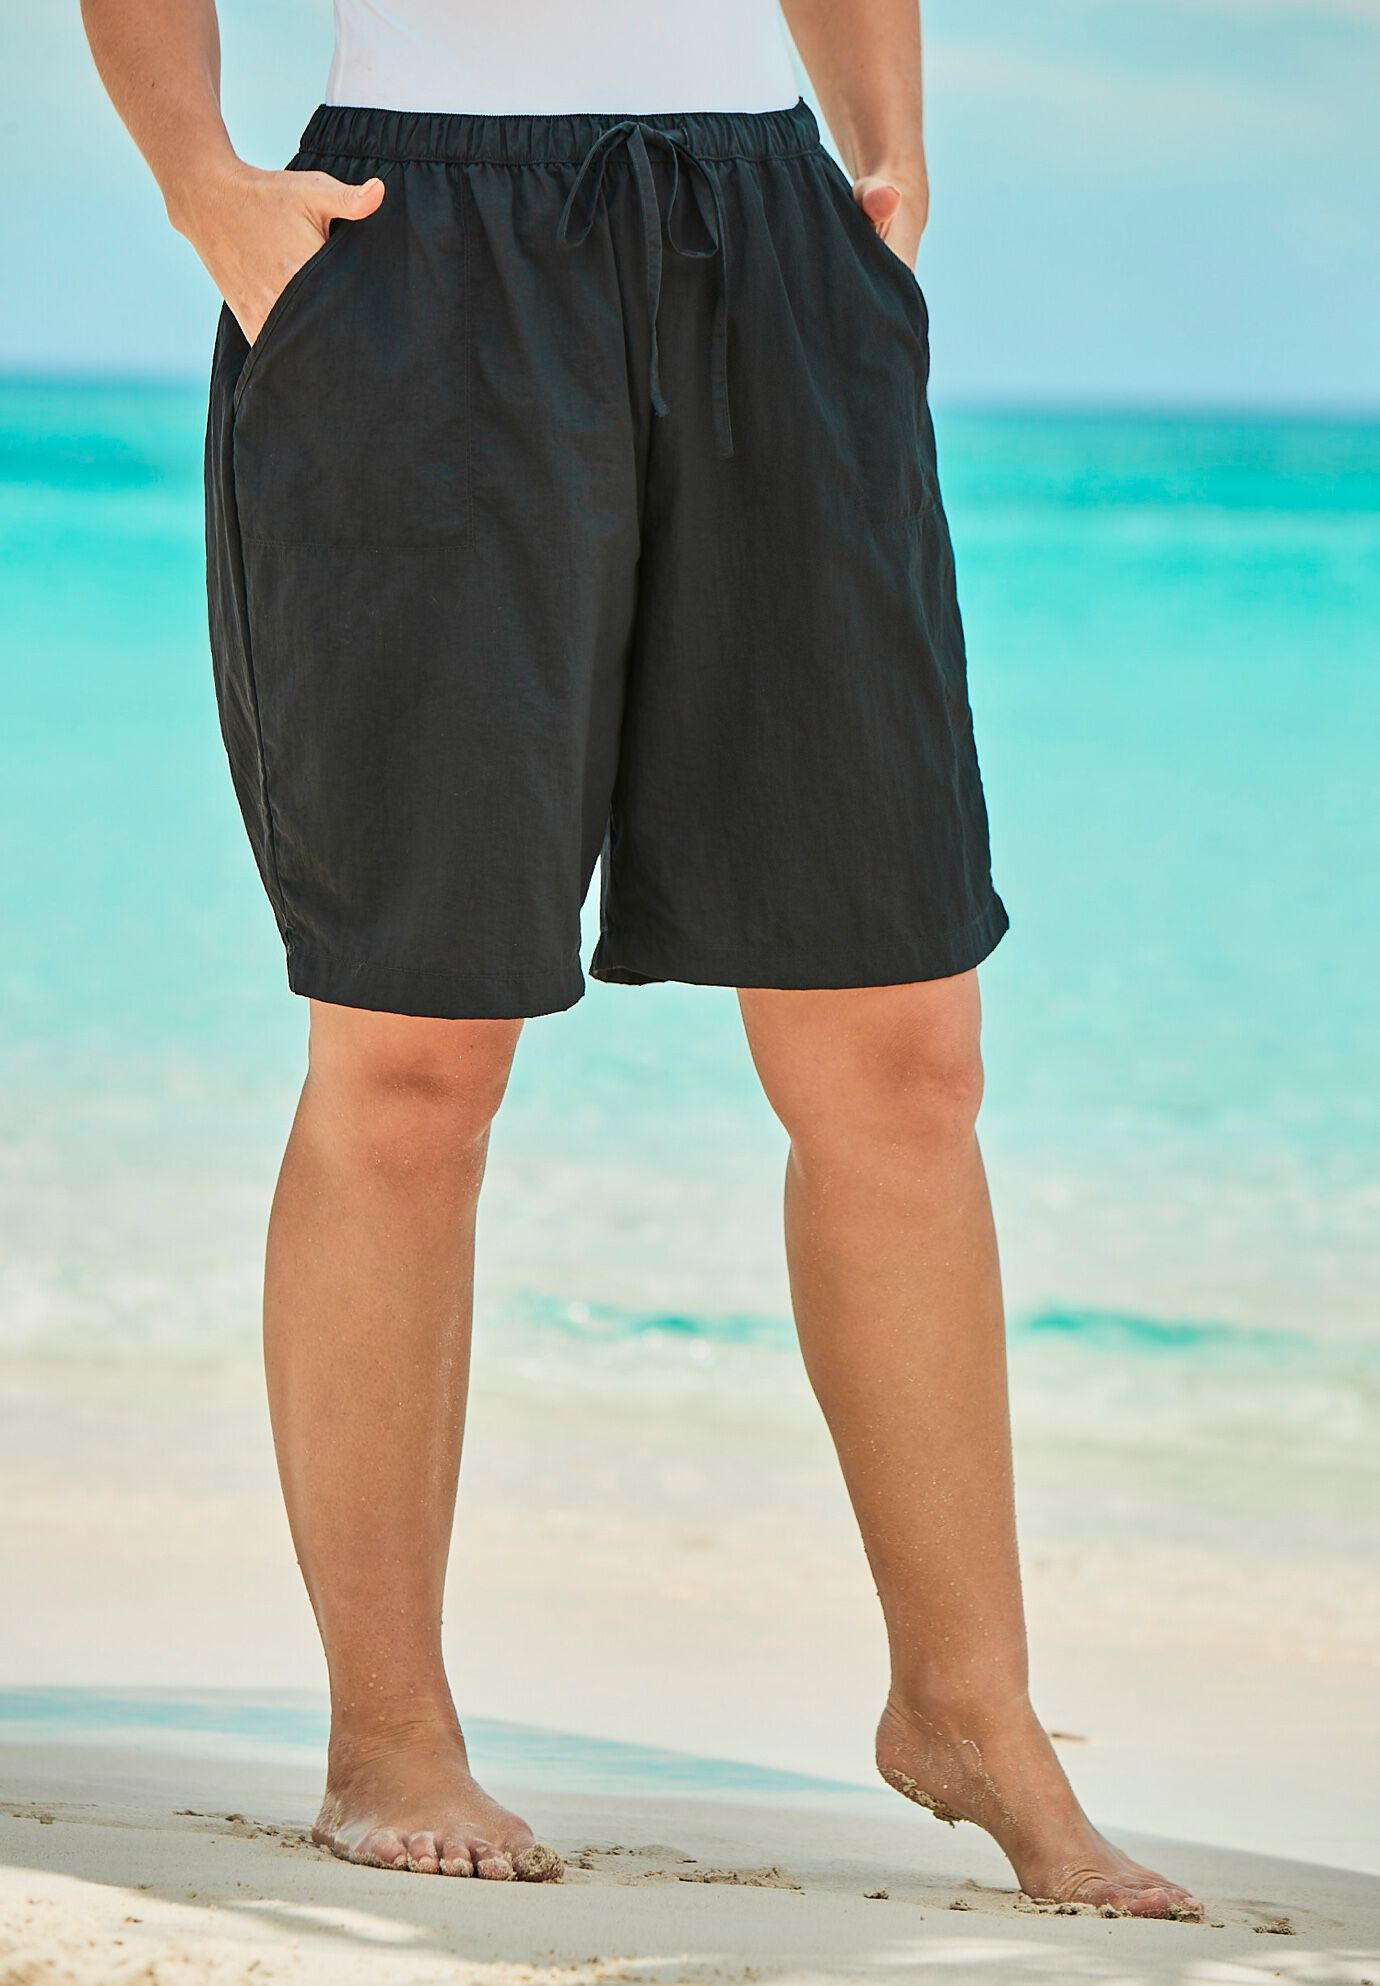 Black Zebra Head Lines with Feather Loose Beach Shorts for Men